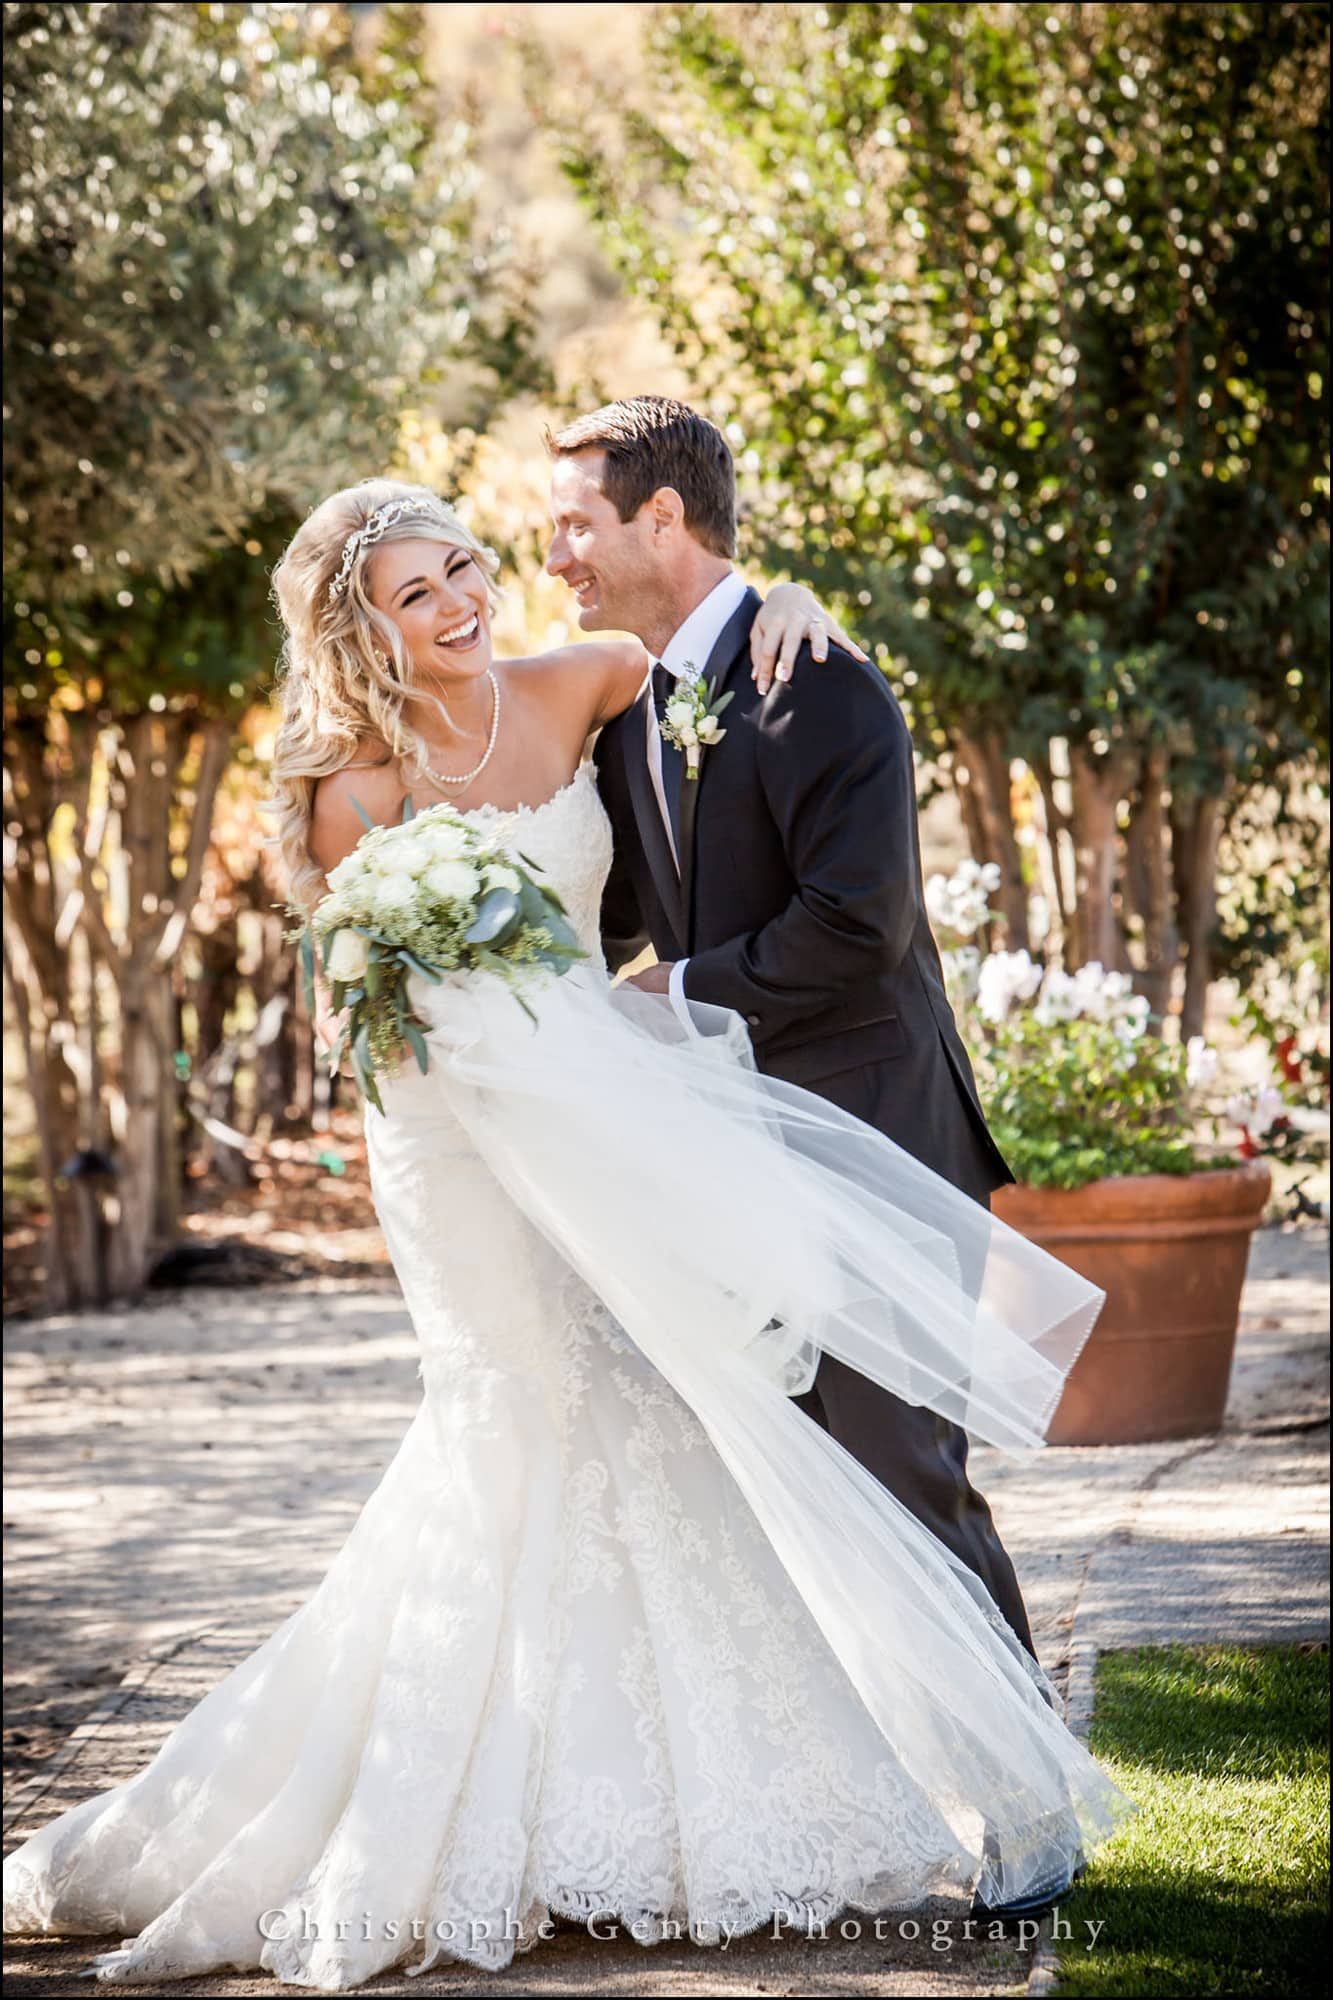 Wedding photography at Brix Restaurant in Napa, CA